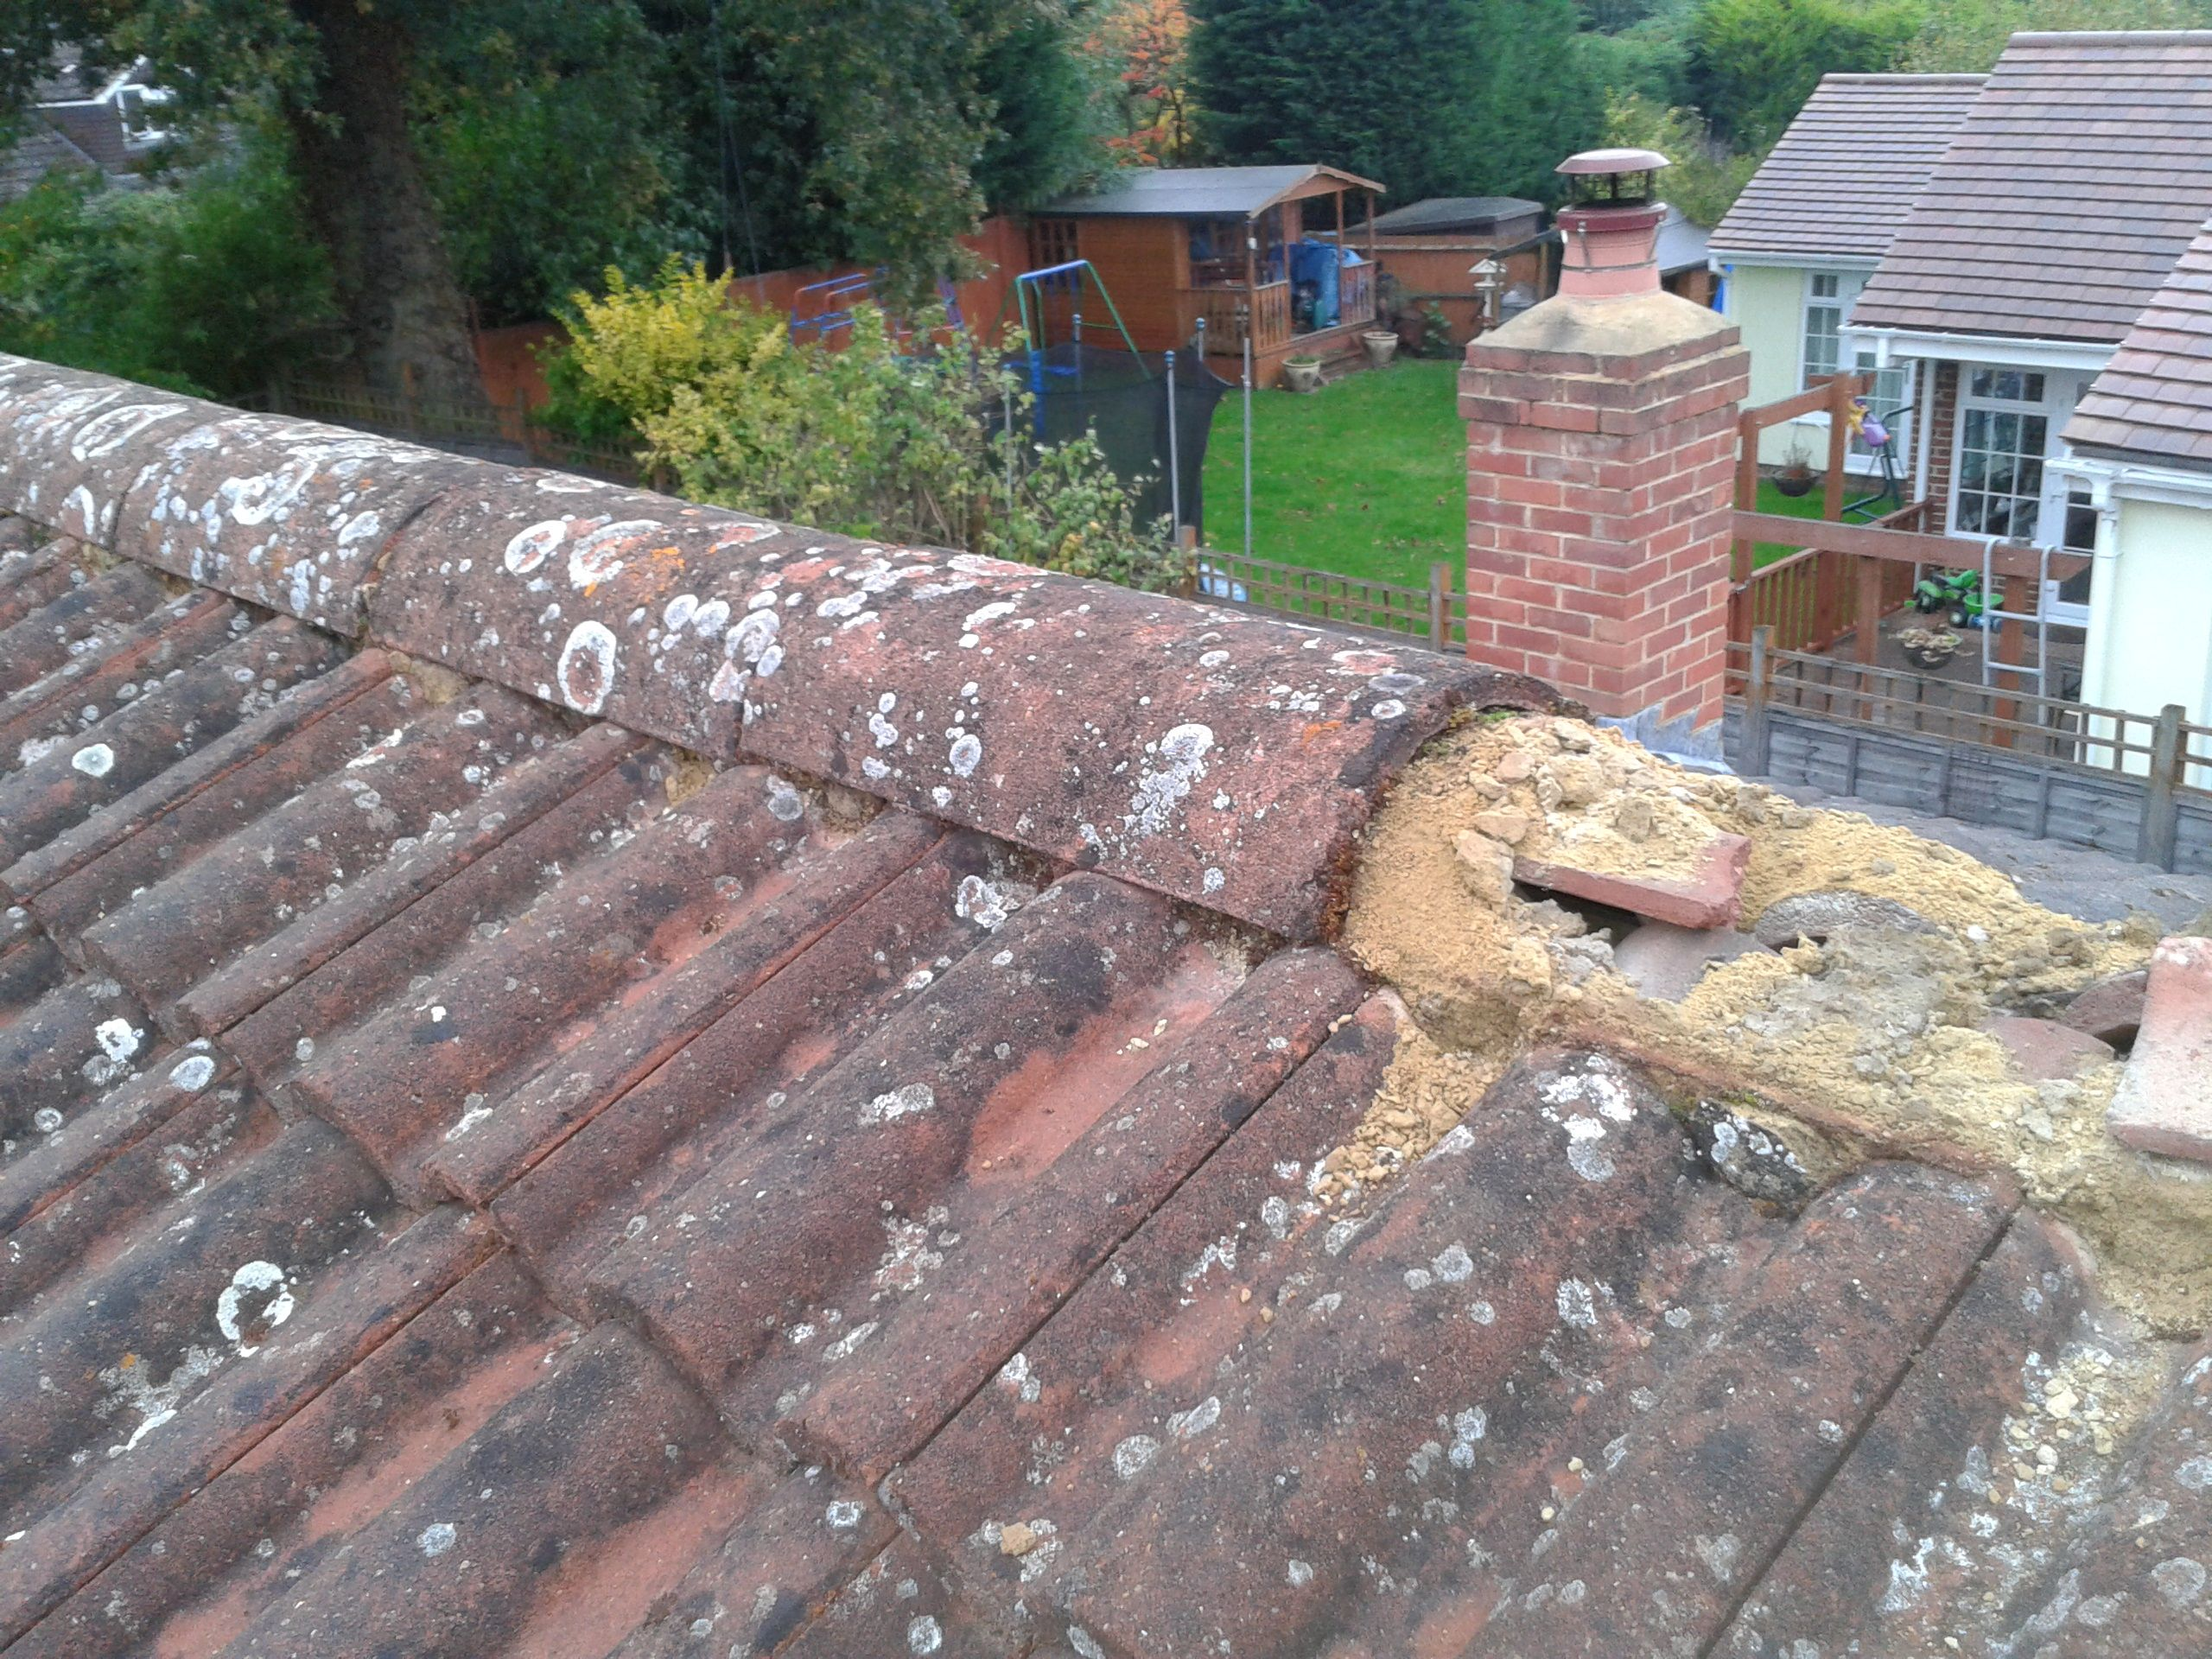 How To Fix Loose Concrete Roof Tiles In 2020 Concrete Roof Tiles Roof Shingle Repair Concrete Roof